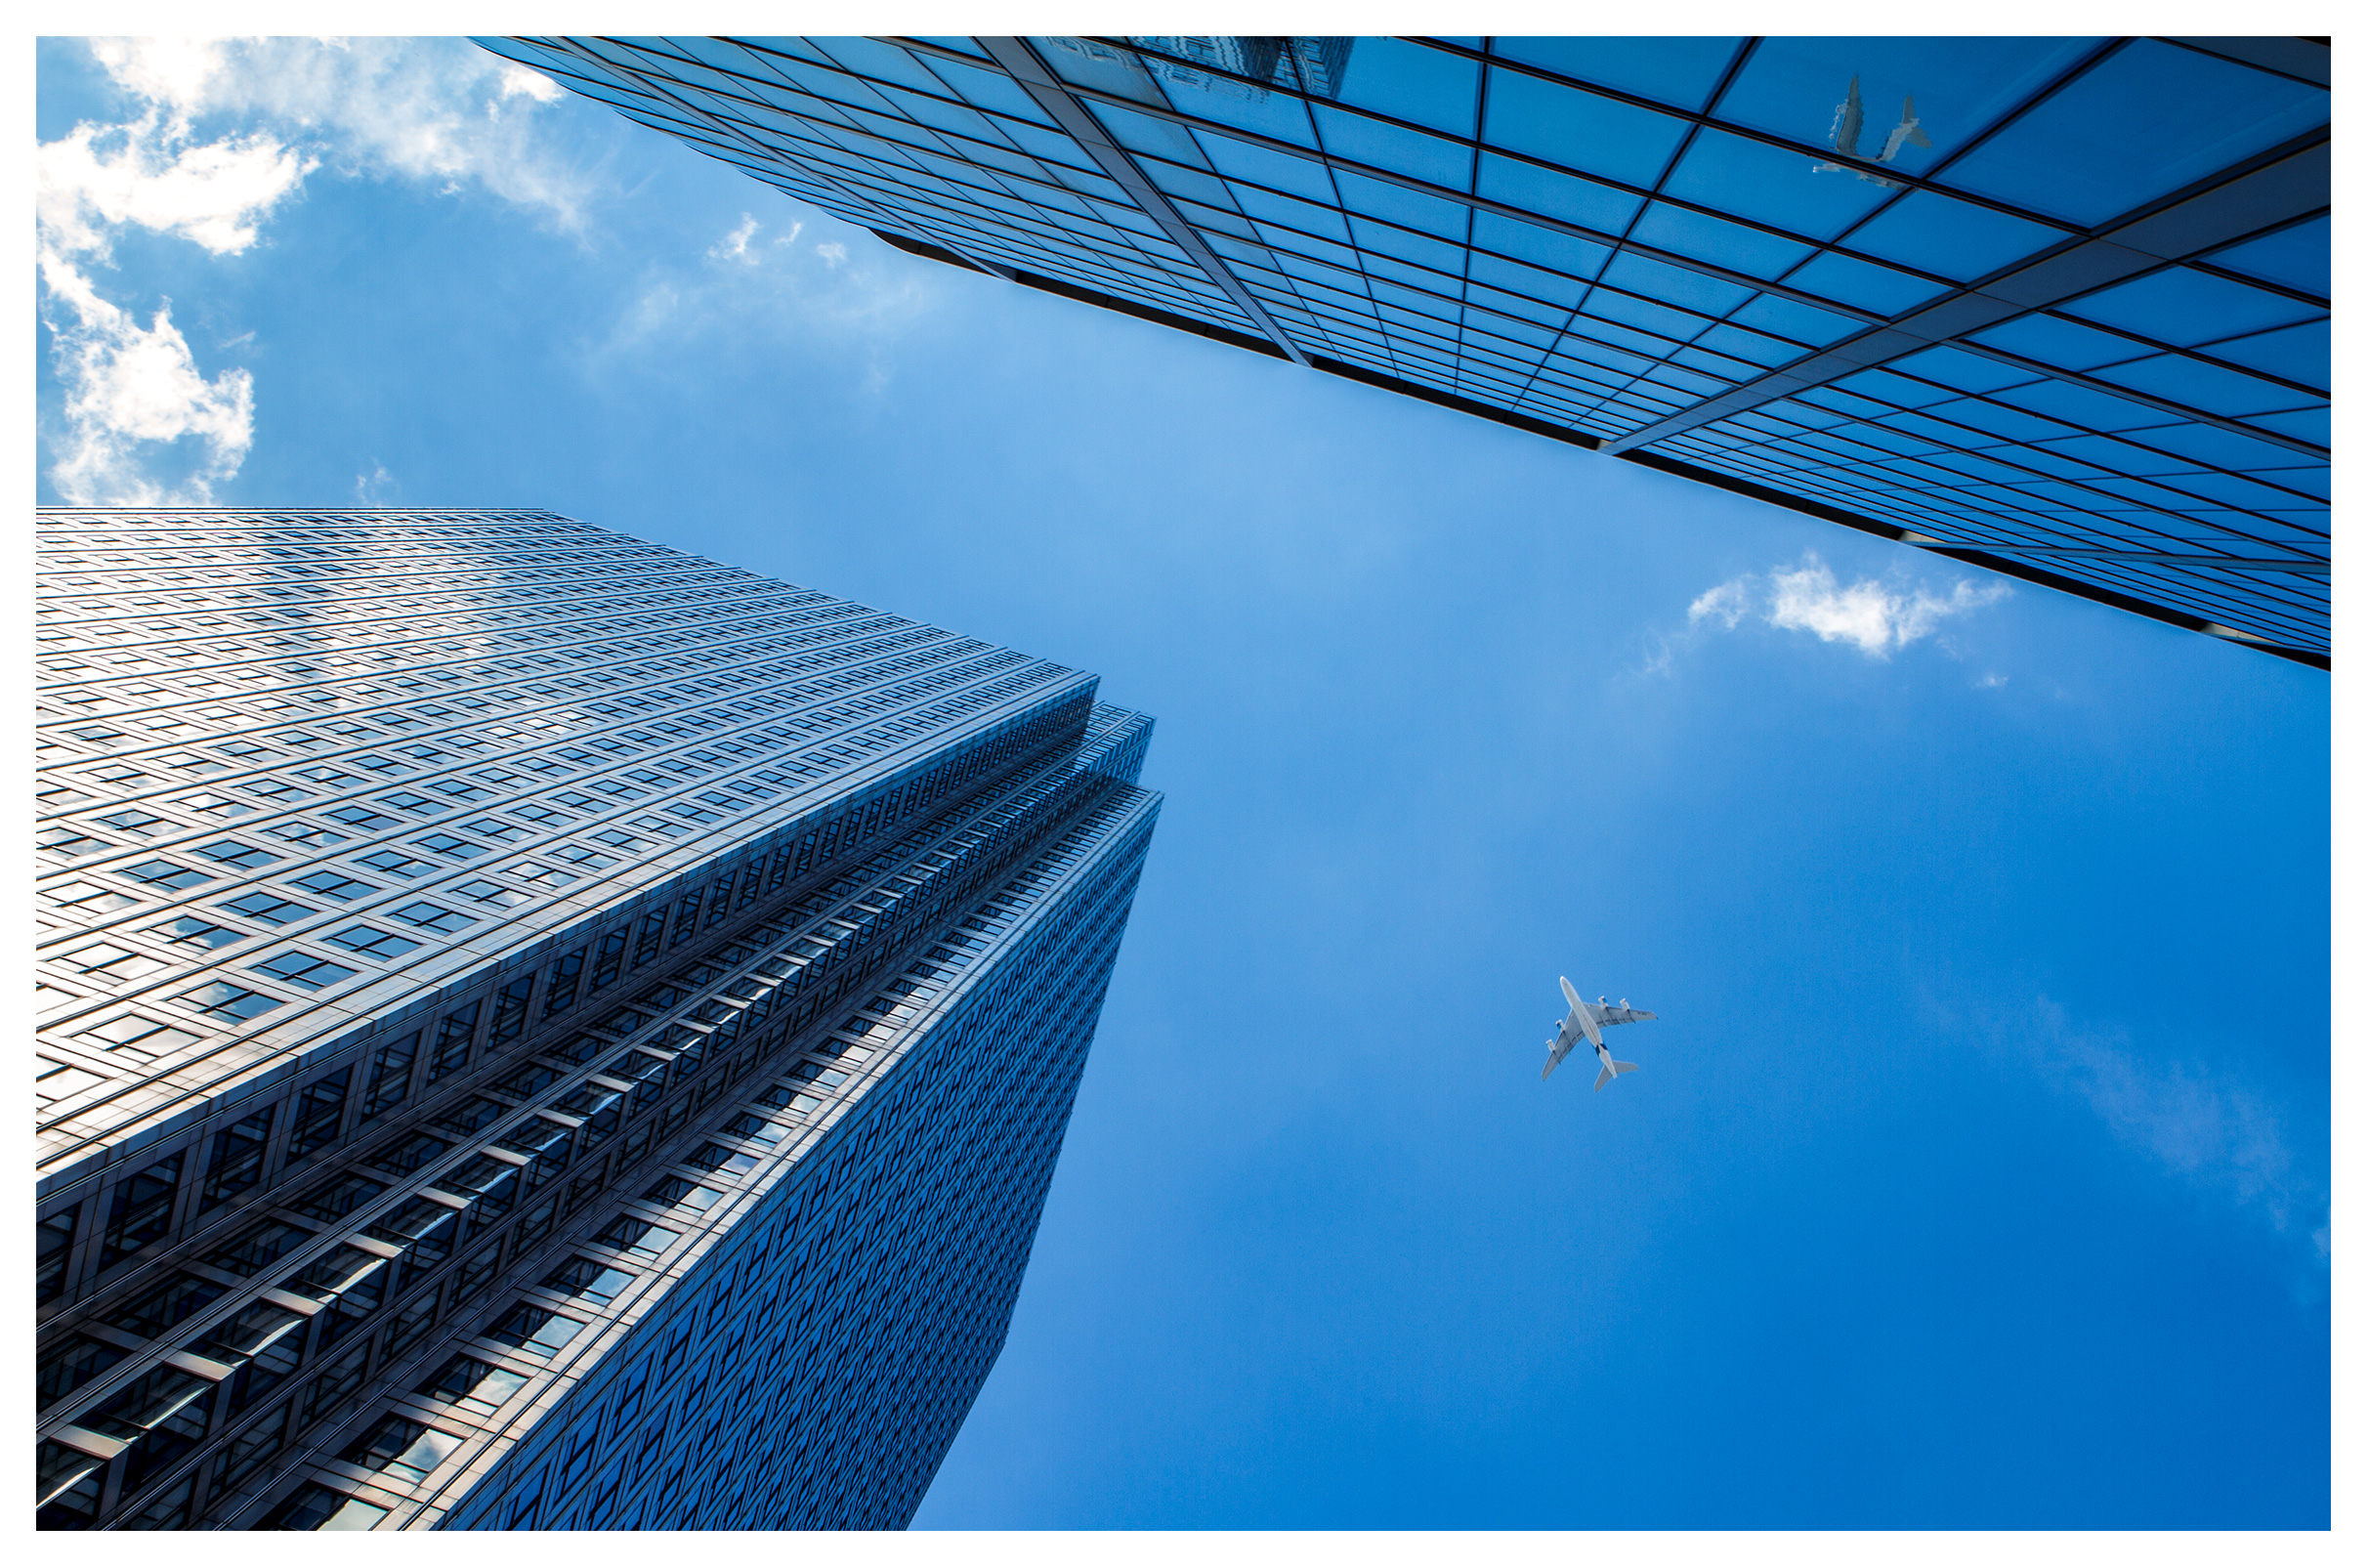 London commercial photography, Abstract business concept 'flying high' modern, sky-high office buildings, blue sky with commercial jet plane flying overhead